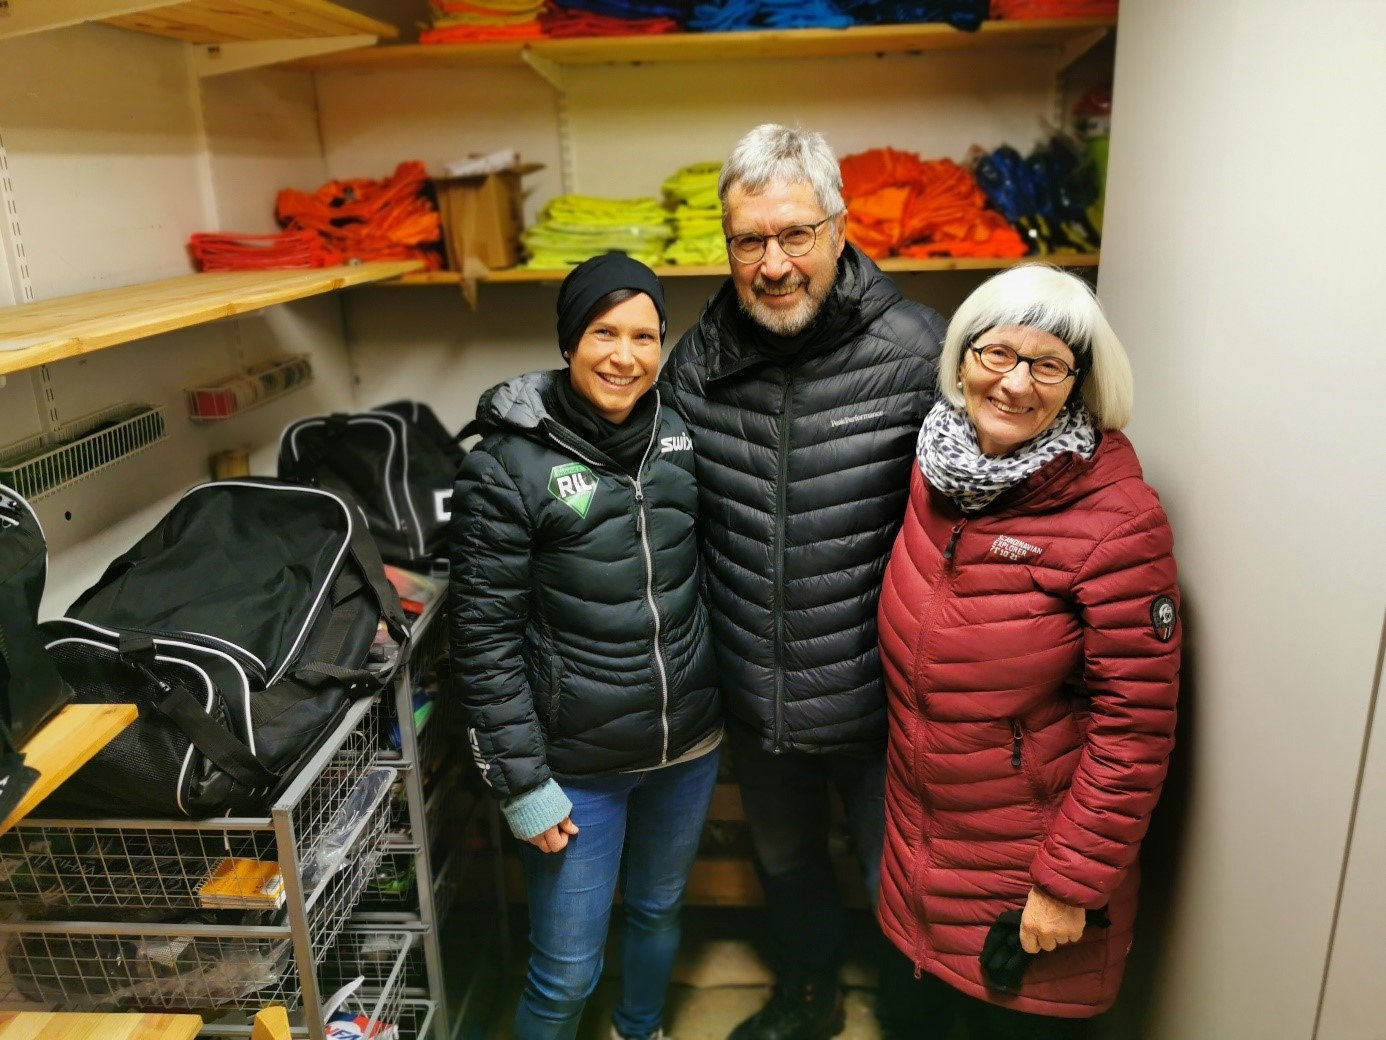 Materialforvalter Marit Grindalen sammen med to representanter for YES Kilimanjaro, Jens Olai Jenssen og Ellen Graff Jenssen.